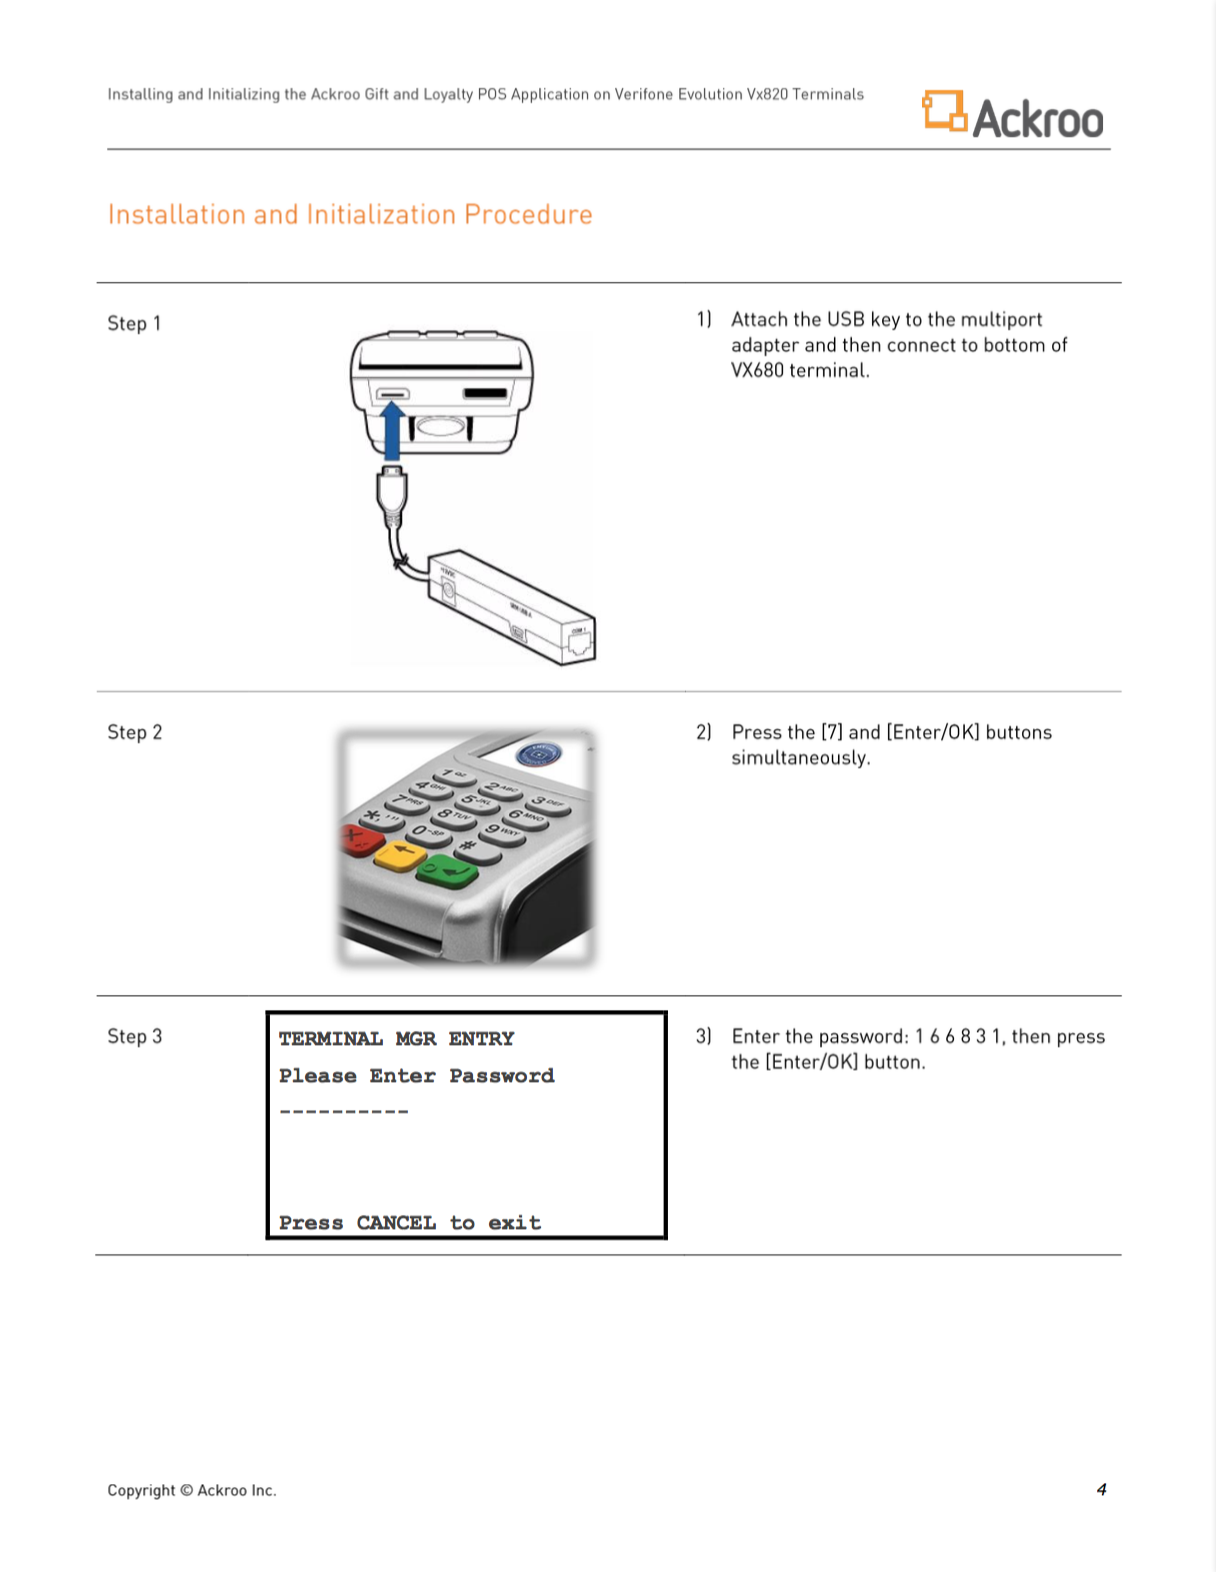 Verifone_Evolution_Vx680_Ackapp_installation_guide_-_Page_4.png